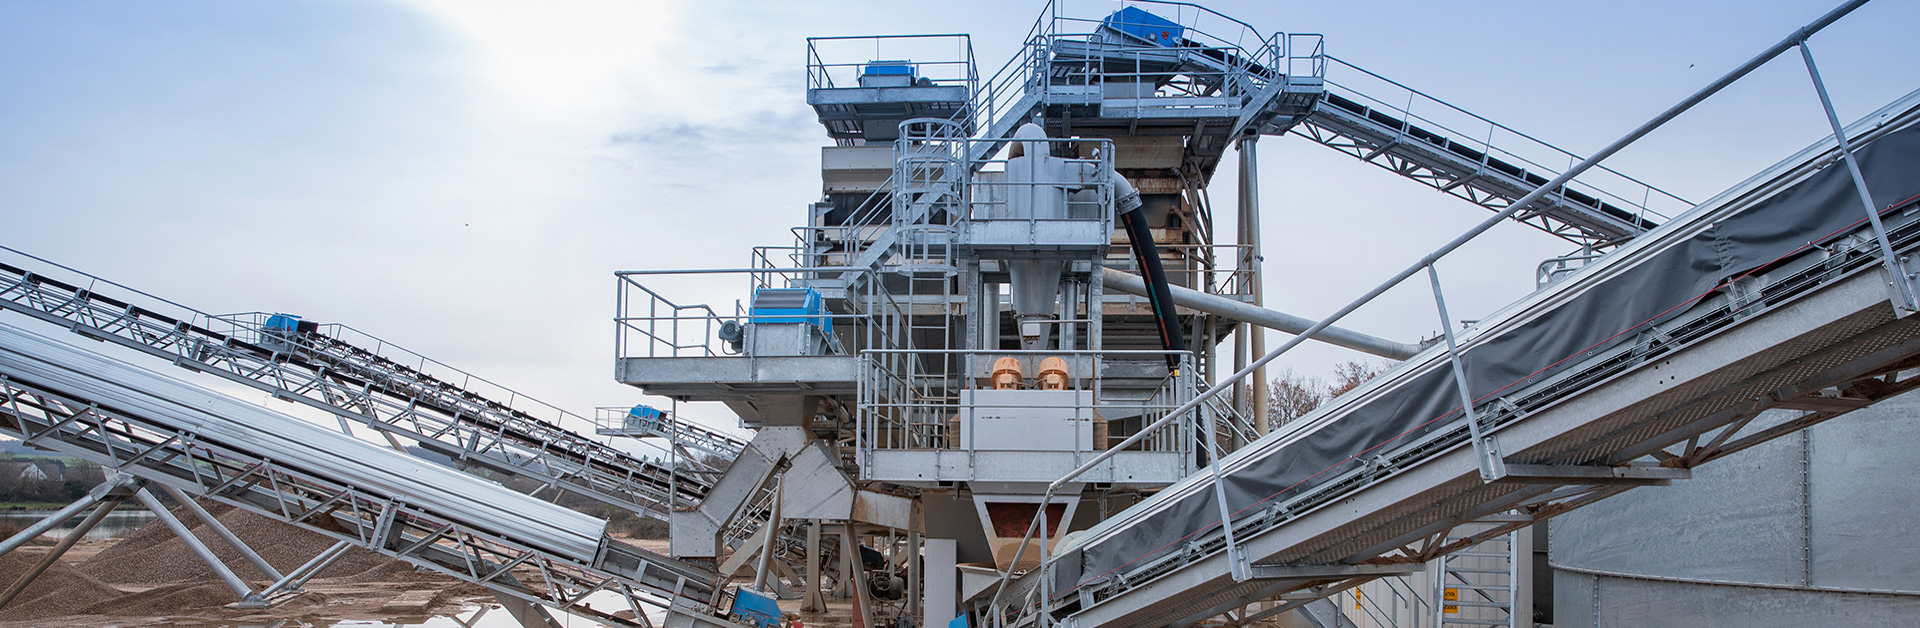 Design of fixed plant solutions for the aggregates industry